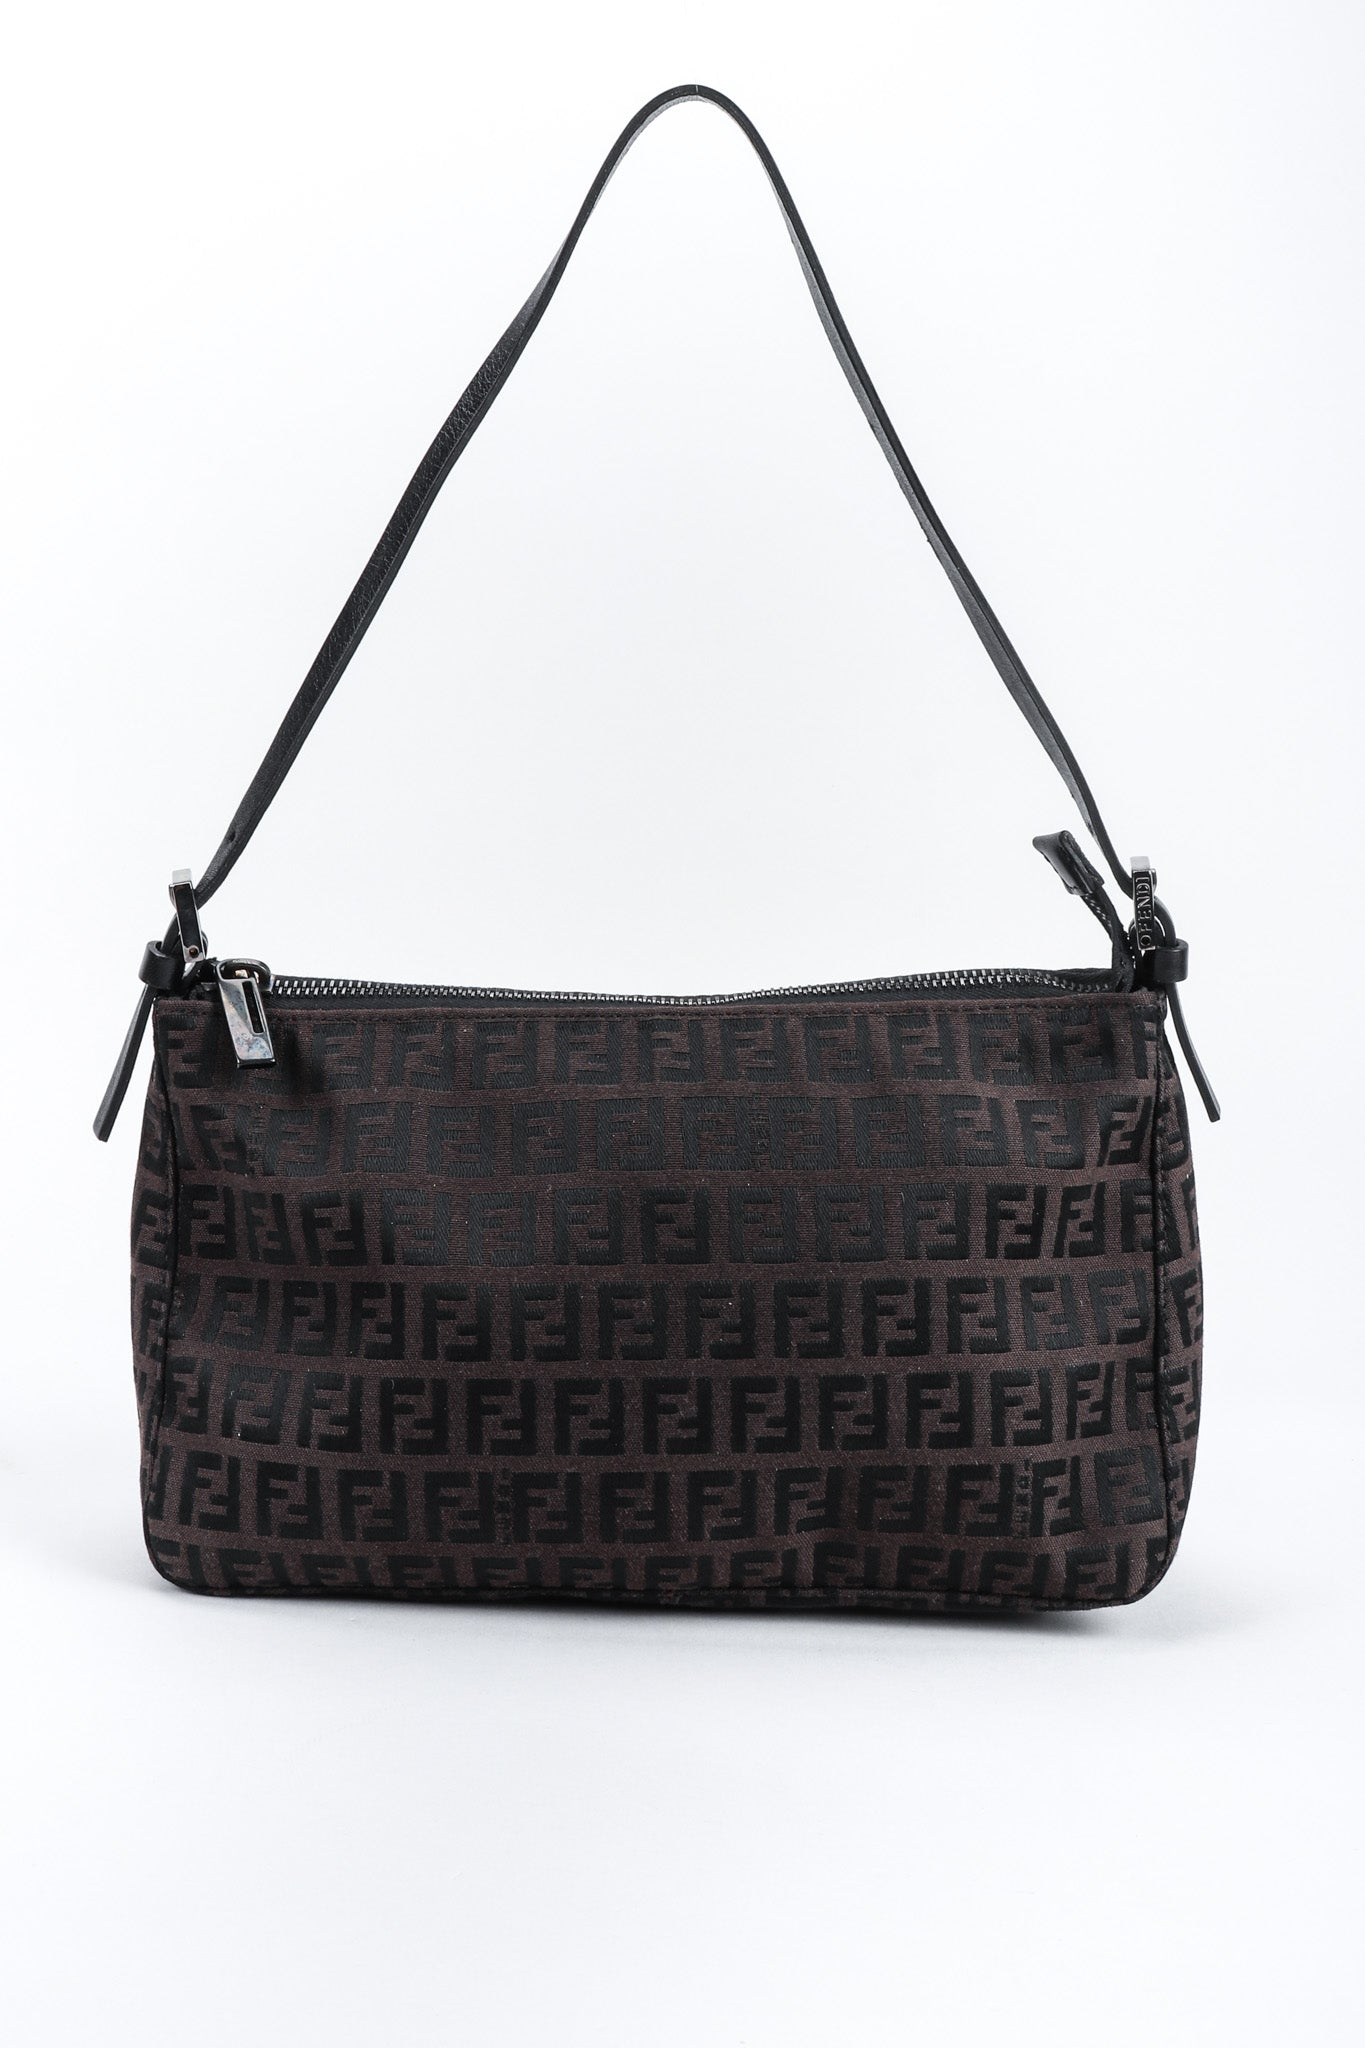 d27a0fc7ad88 ... where can i buy recess los angeles vintage fendi zucca double f  monogram mini bag brown